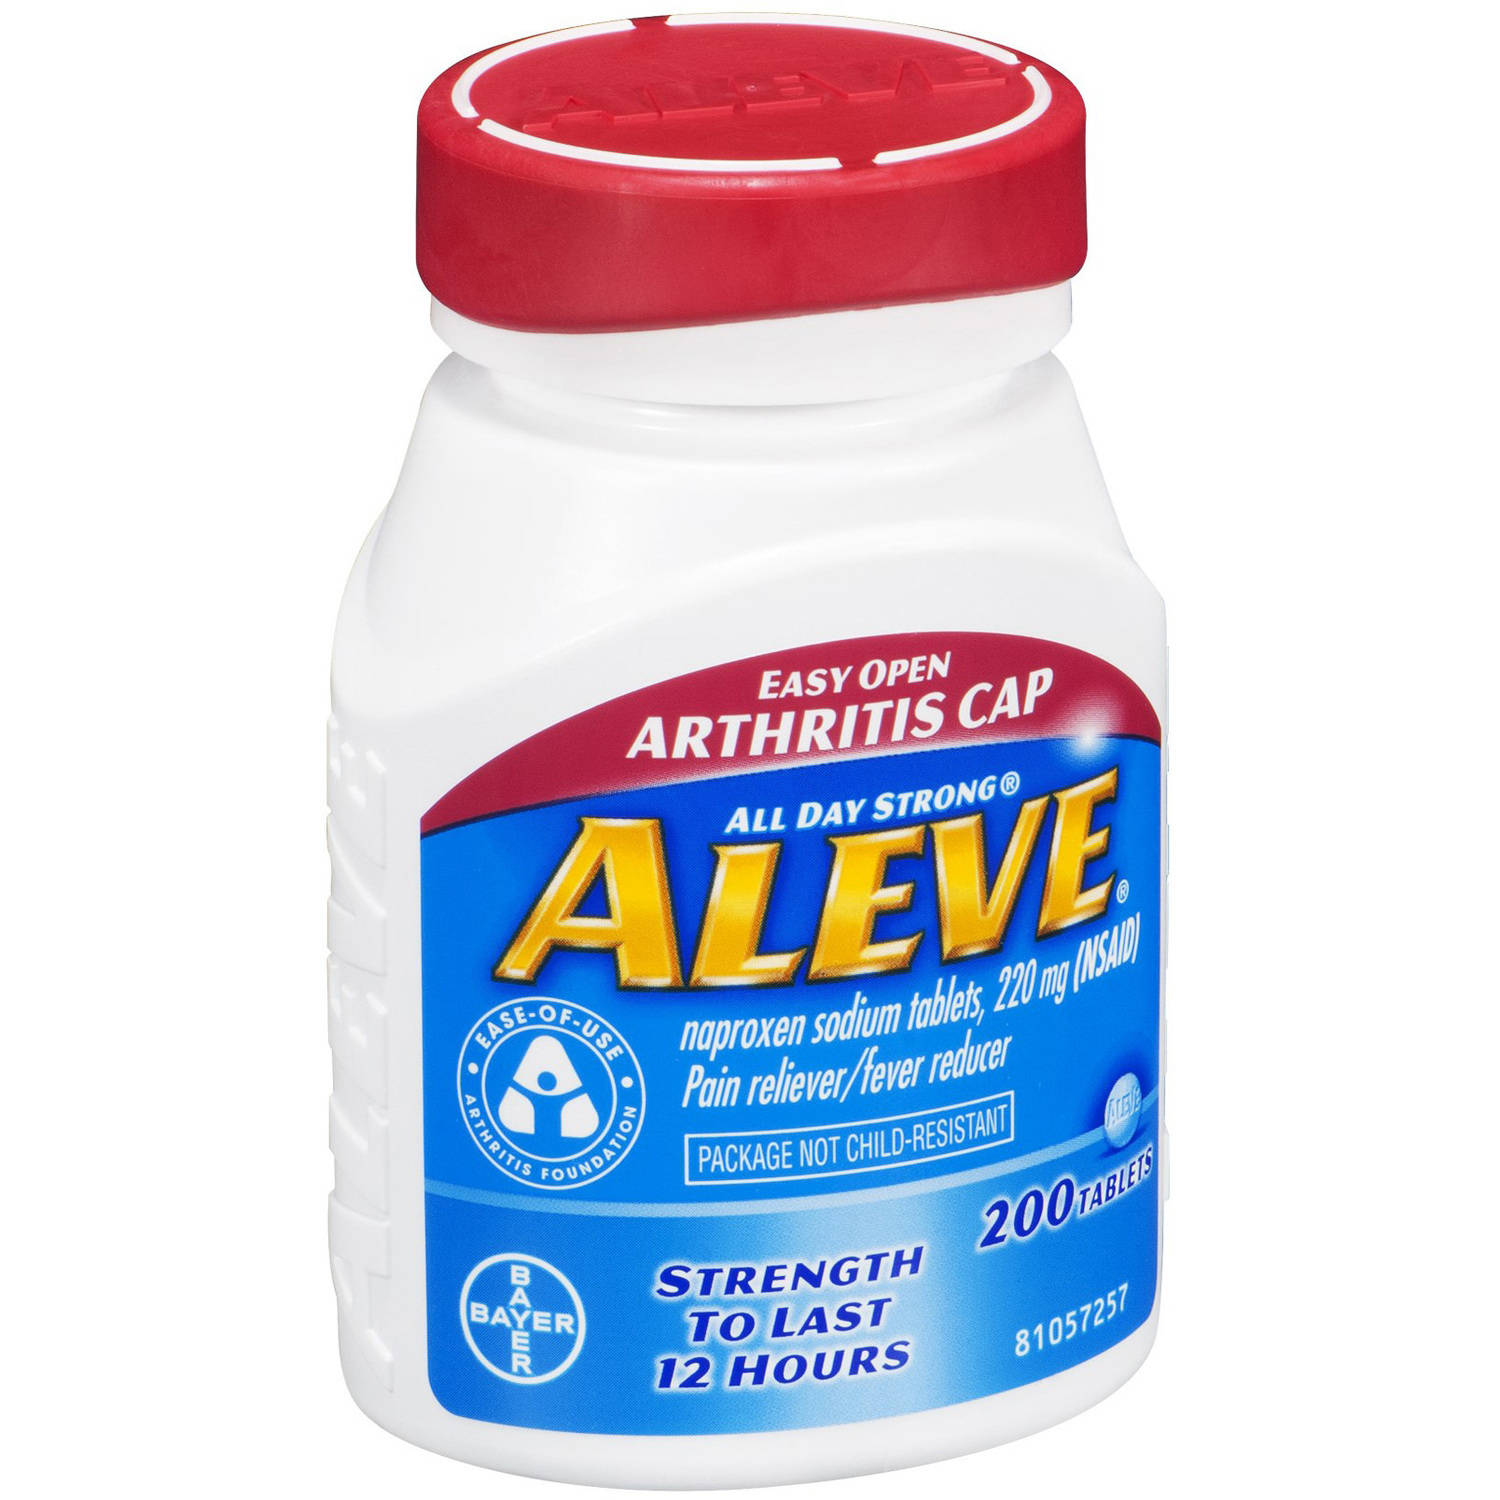 Aleve Pain Reliever Fever Reducer Tablets, 200 CT (Pack of 4)